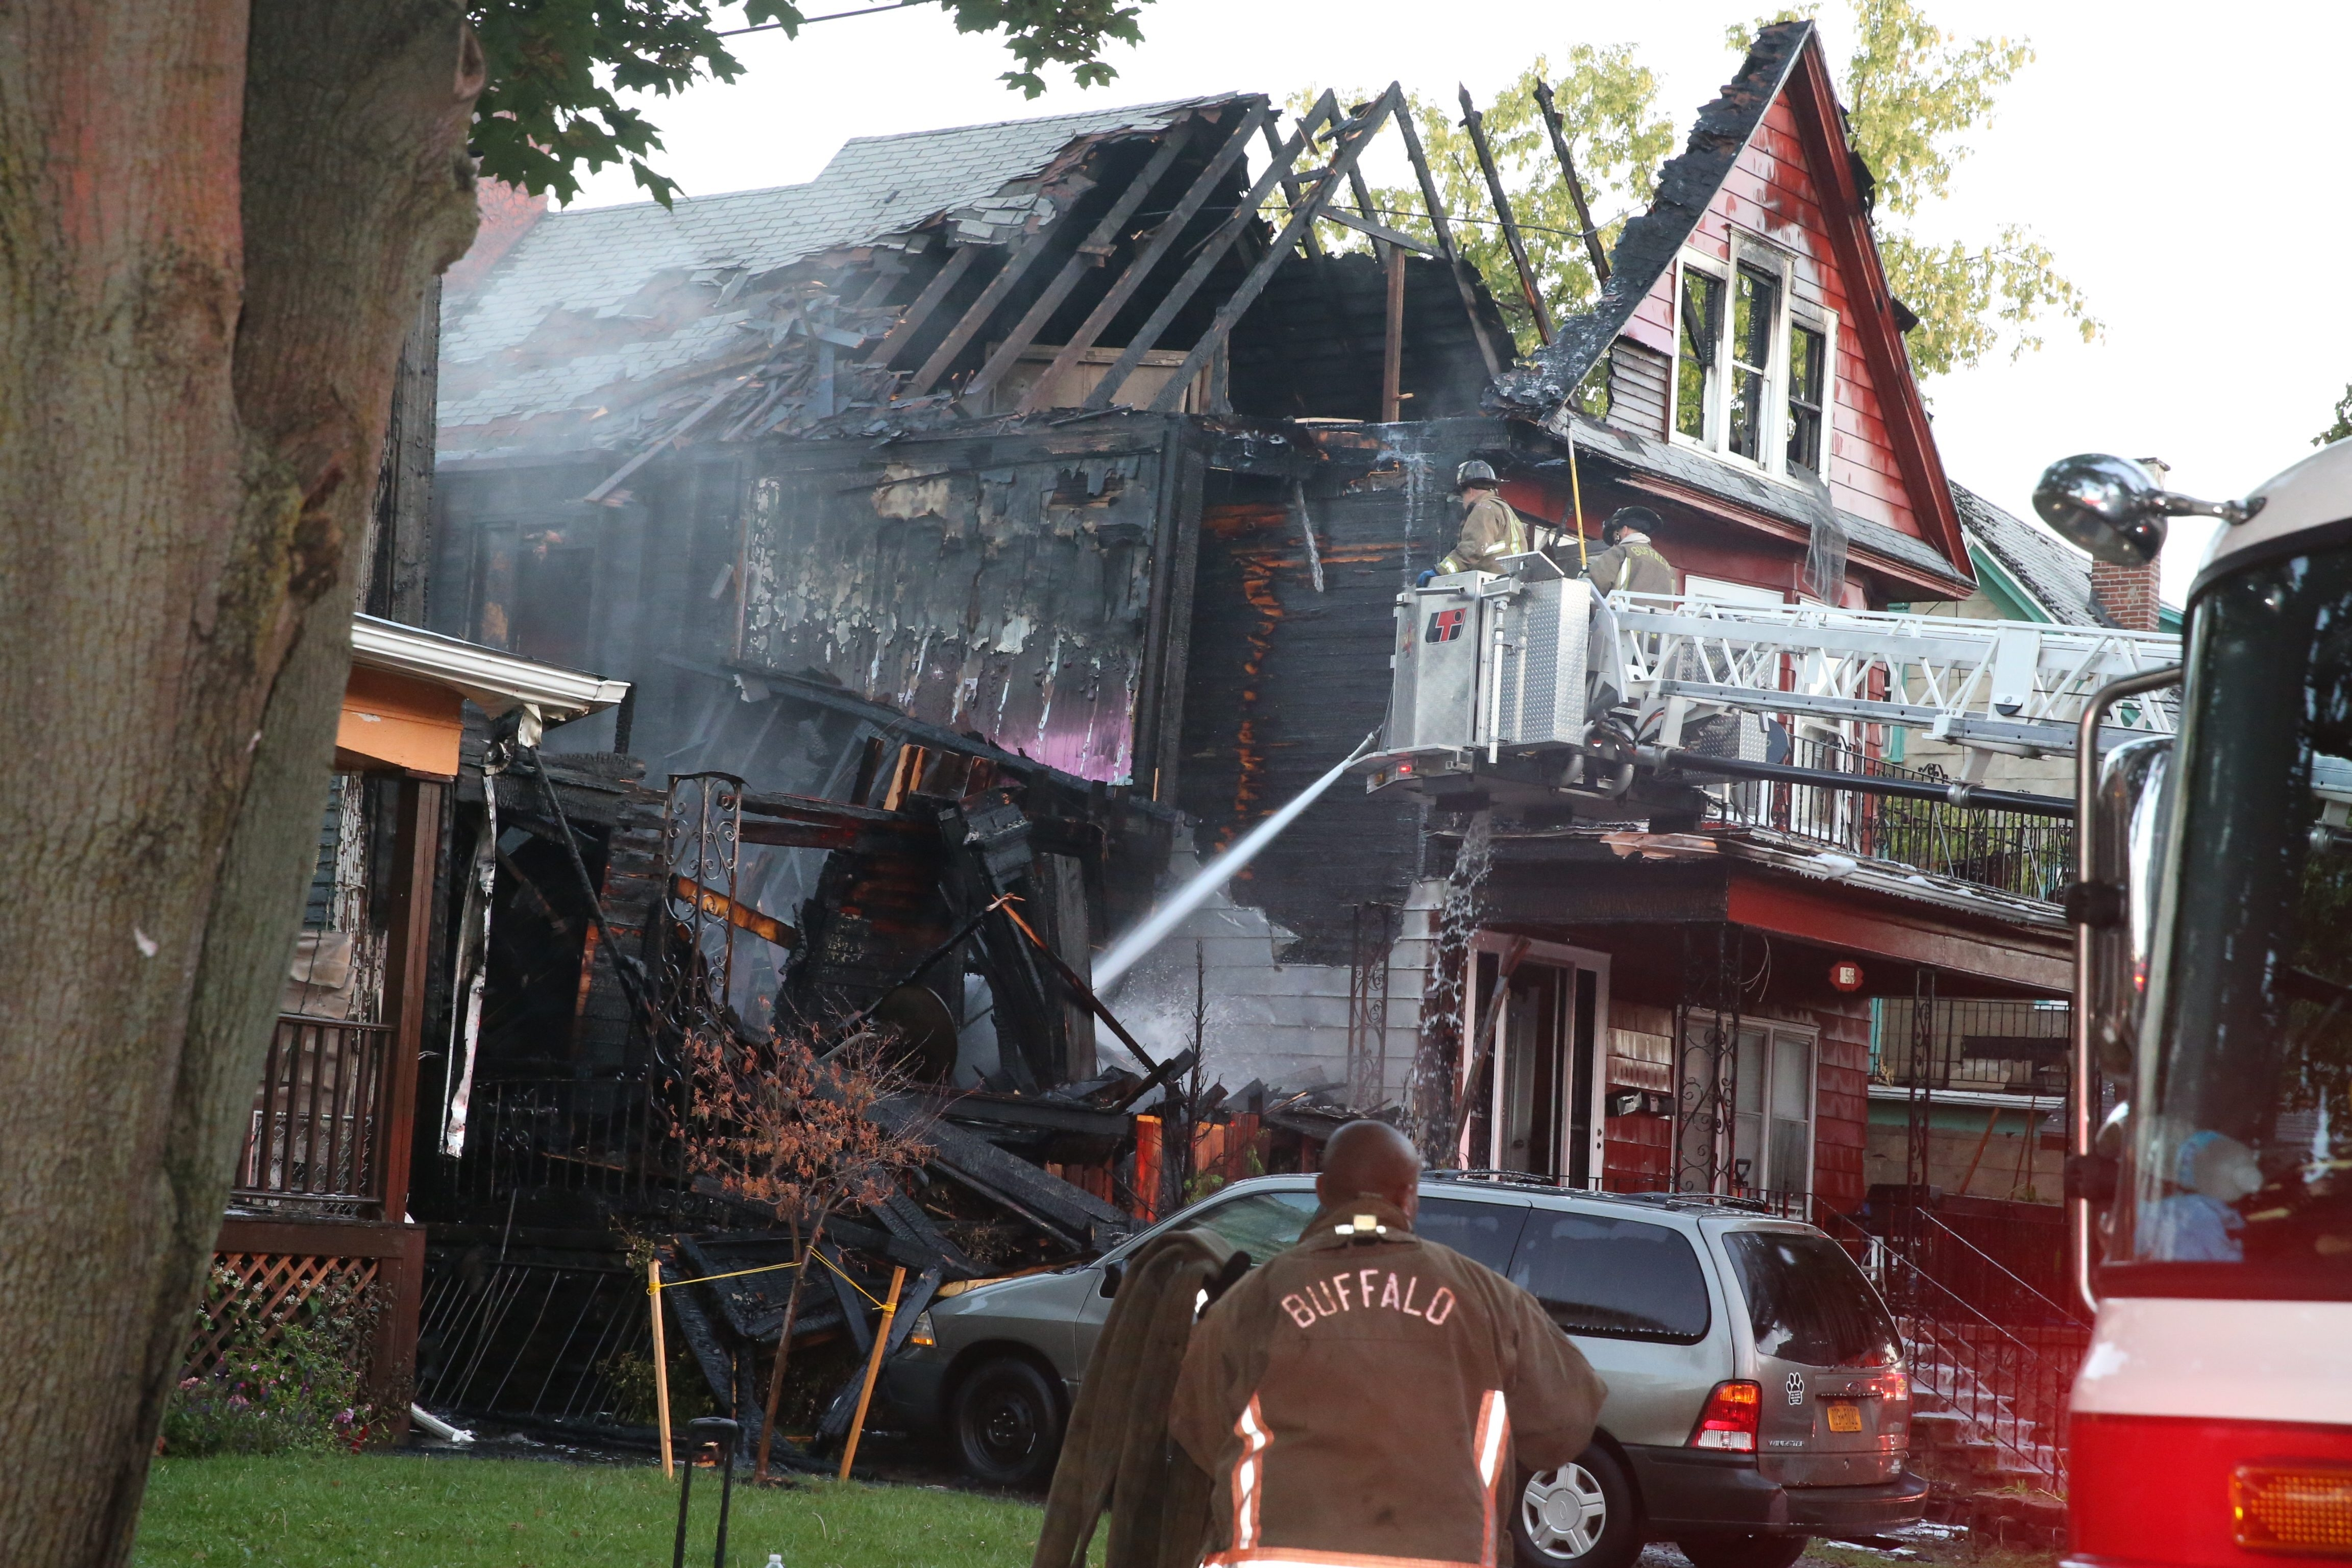 Three homes were damaged after a two-alarm fire in the 400 block of Herkimer Street on Wednesday morning. Overall damage was estimated at $320,000.